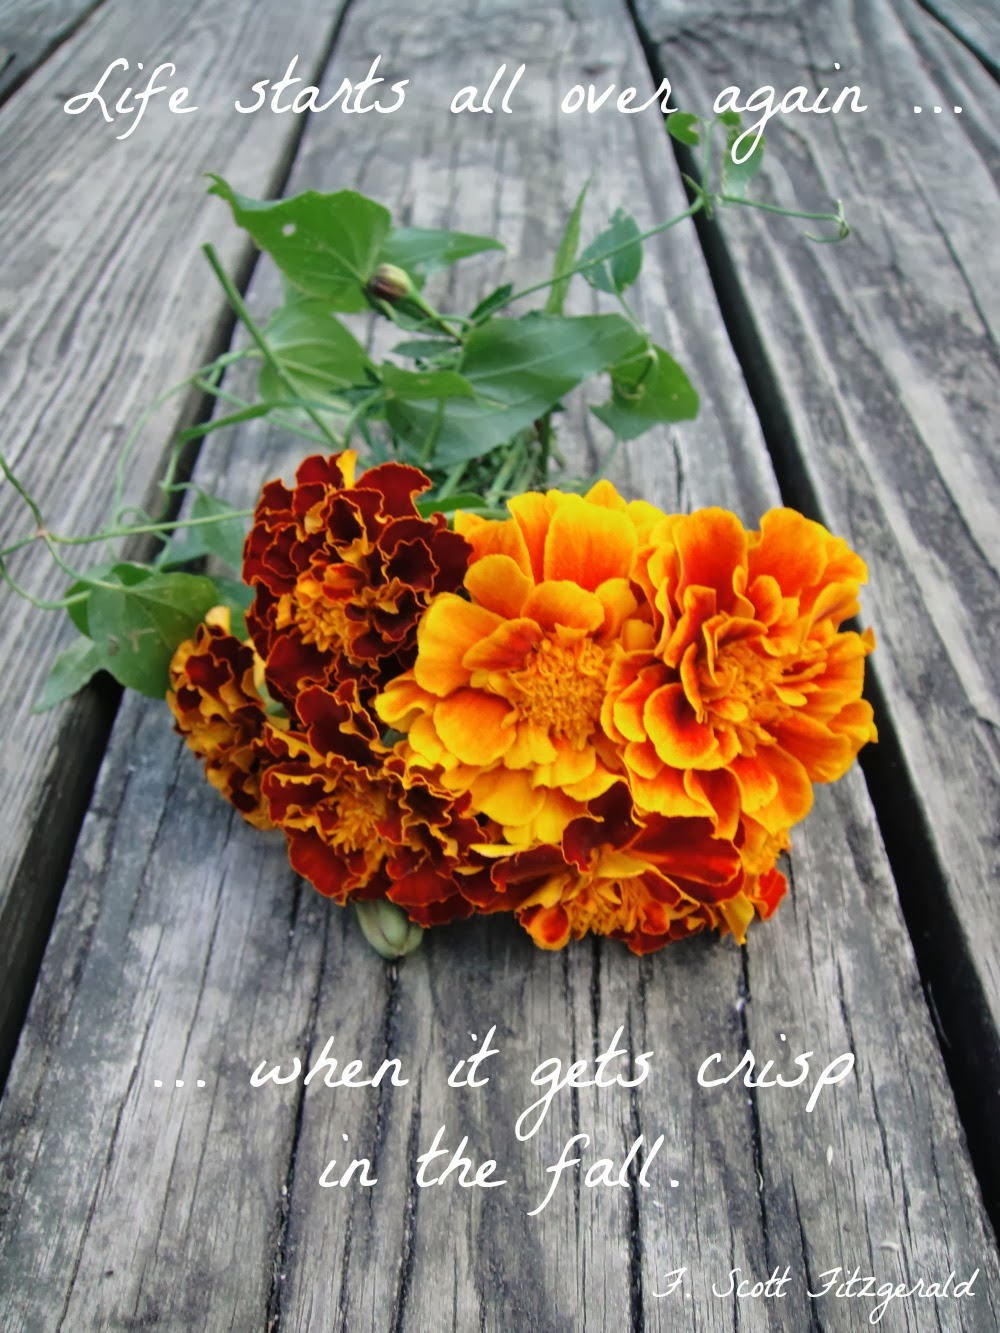 Things to do in the fall - Fall Quote by F.Scott Fitzgerald